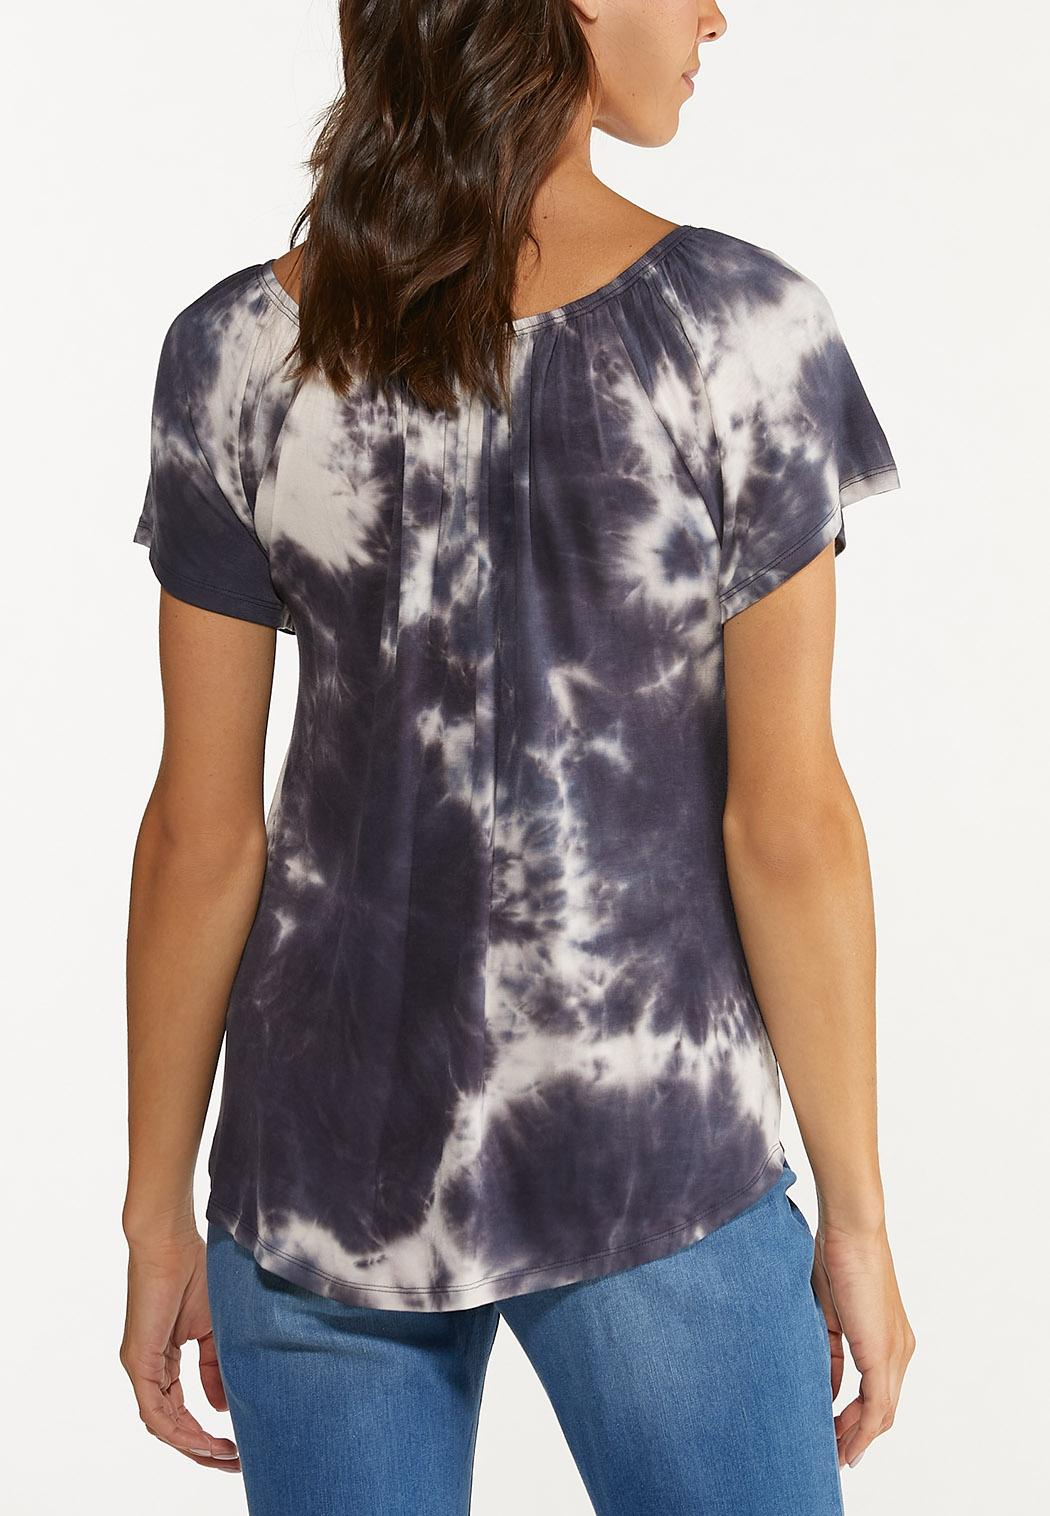 Plus Size Knotted Tie Dye Top (Item #44623661)